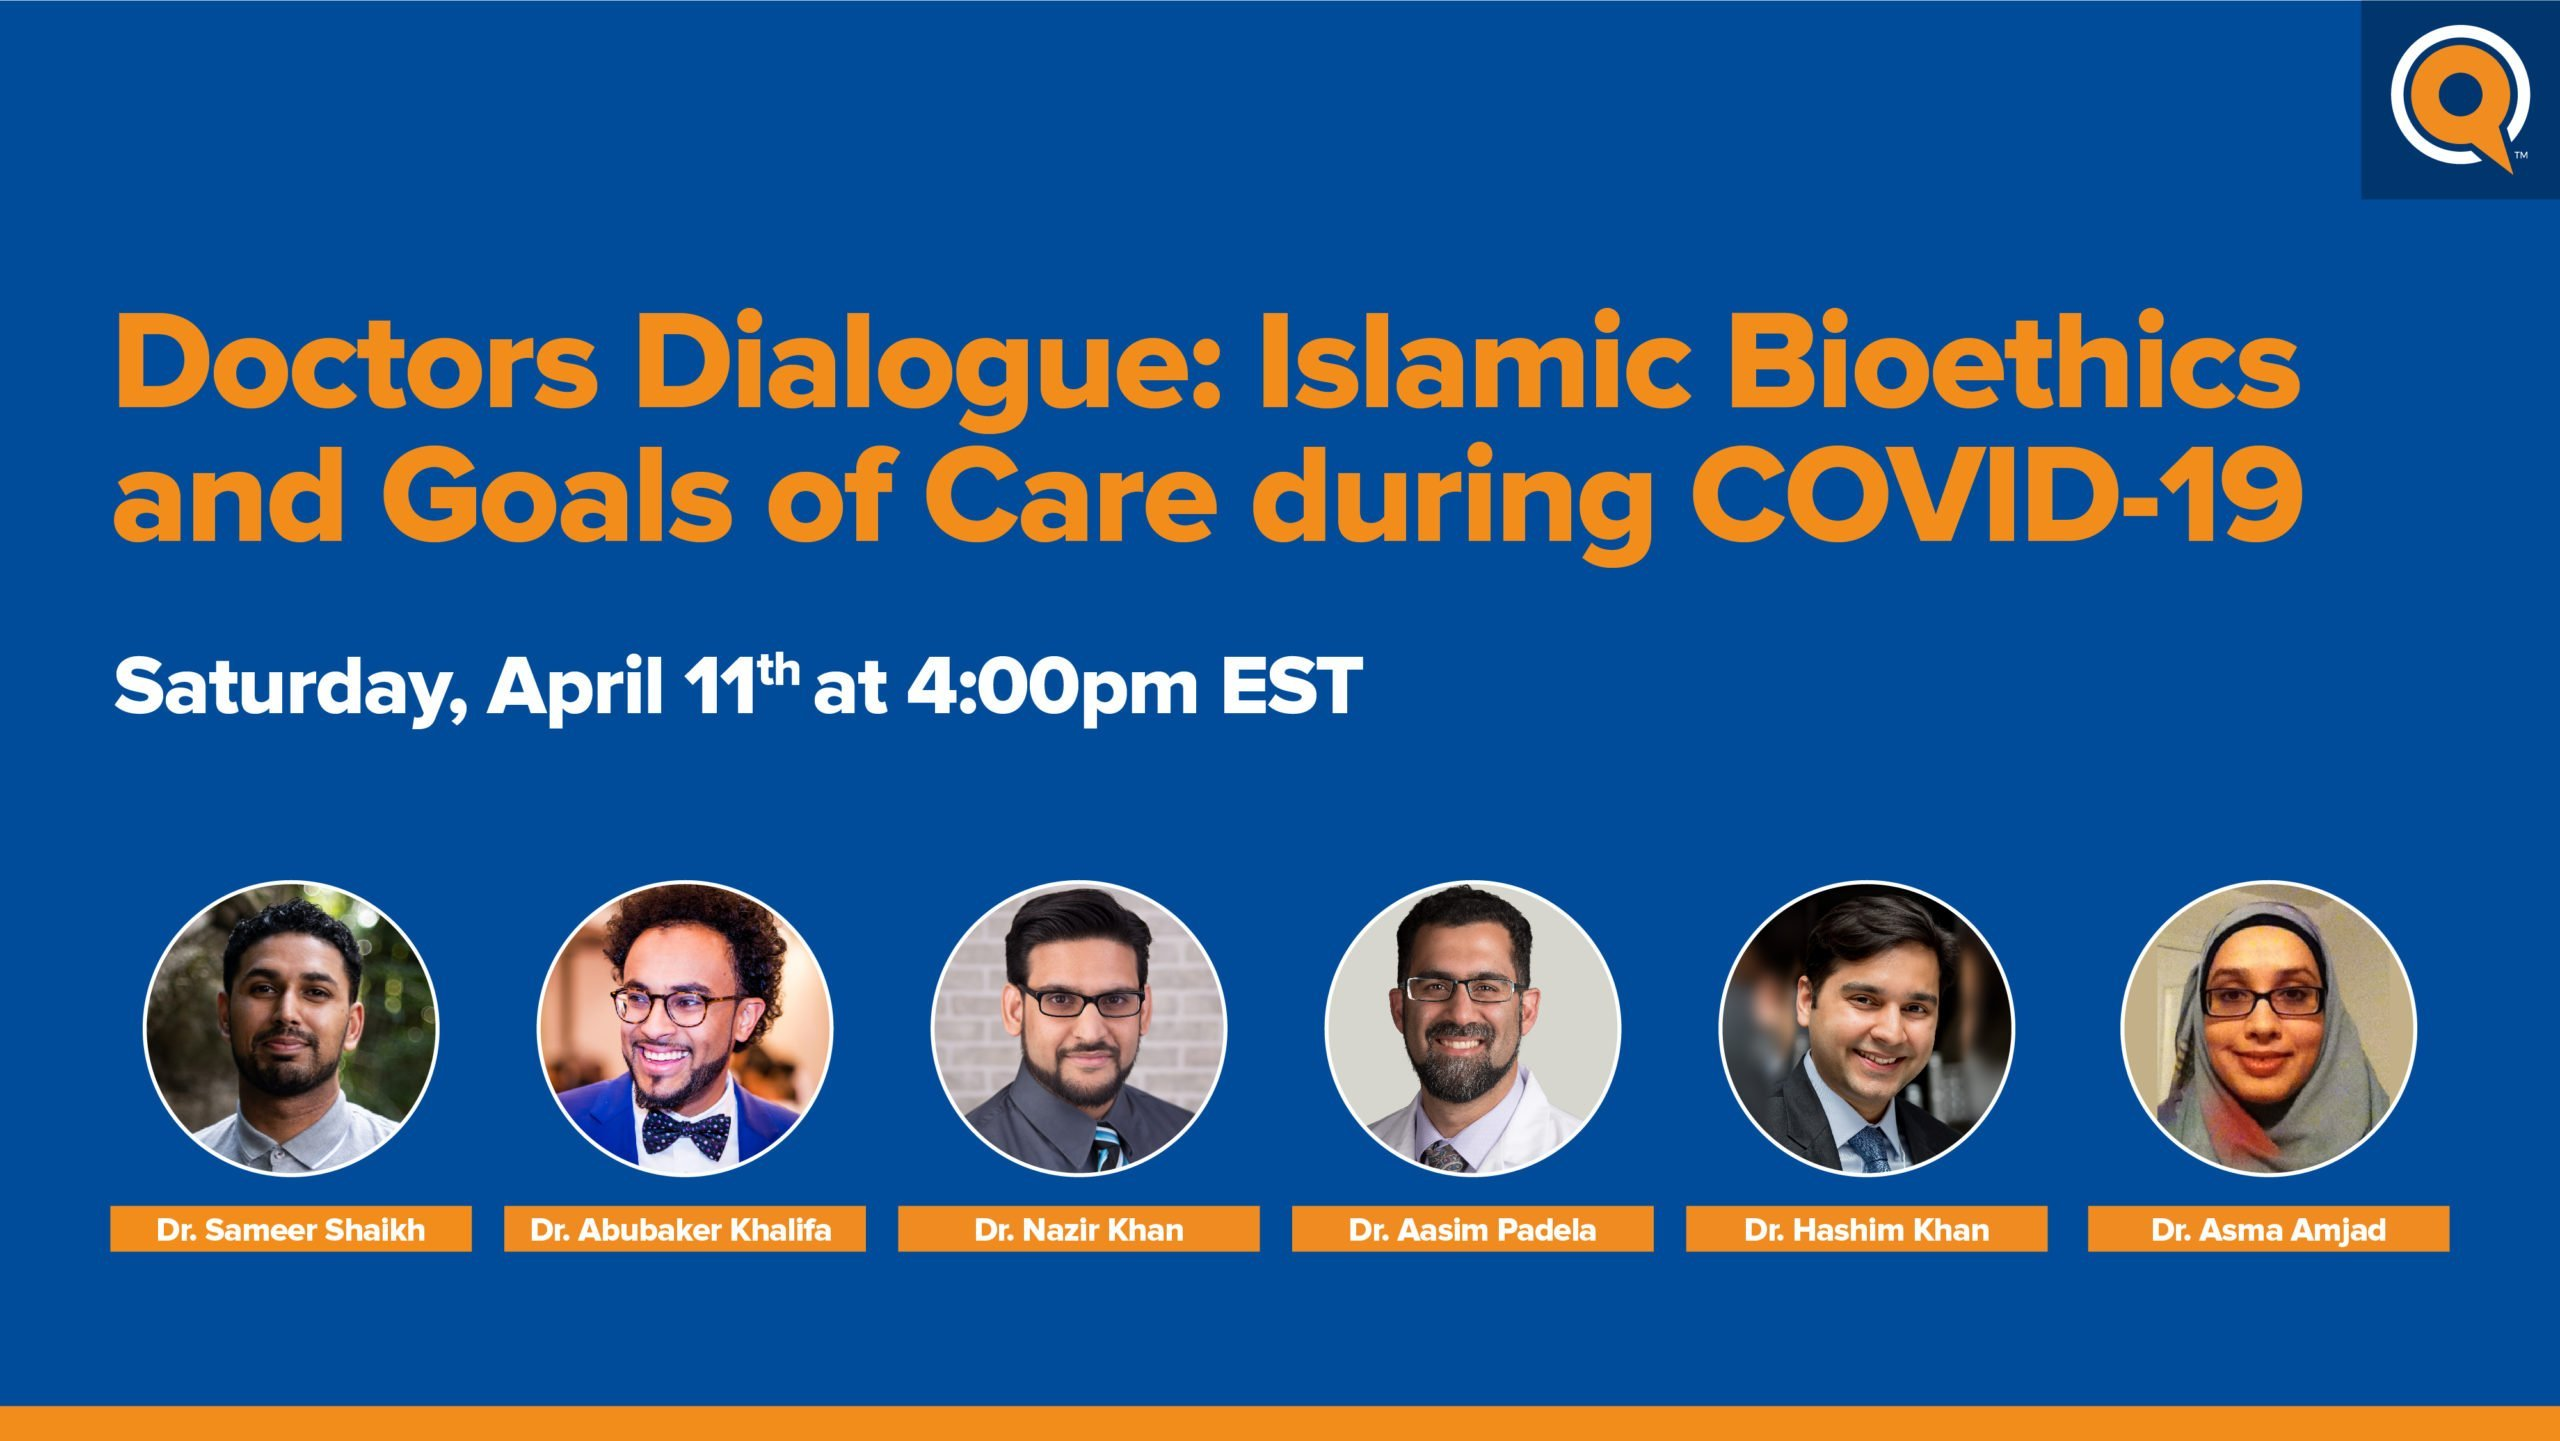 Doctors Dialogue: Islamic Bioethics & Goals of Care During COVID-19